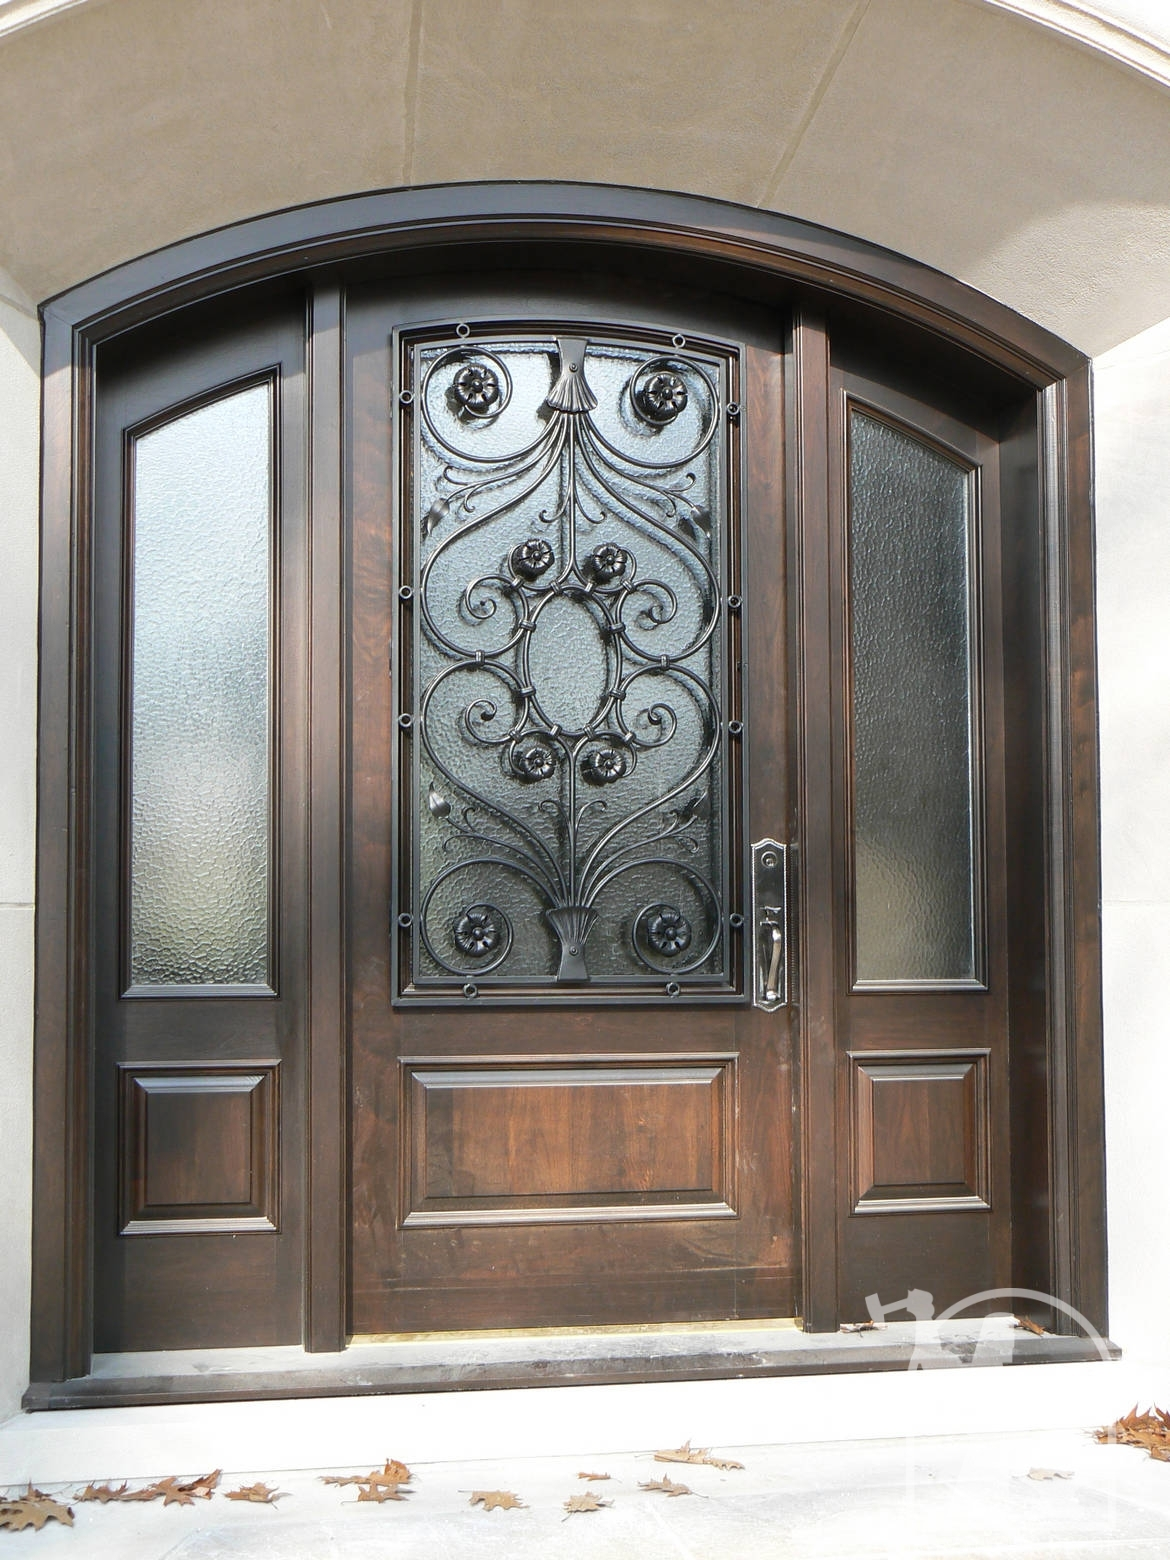 ODL decorative glass inserts for exterior entry doors